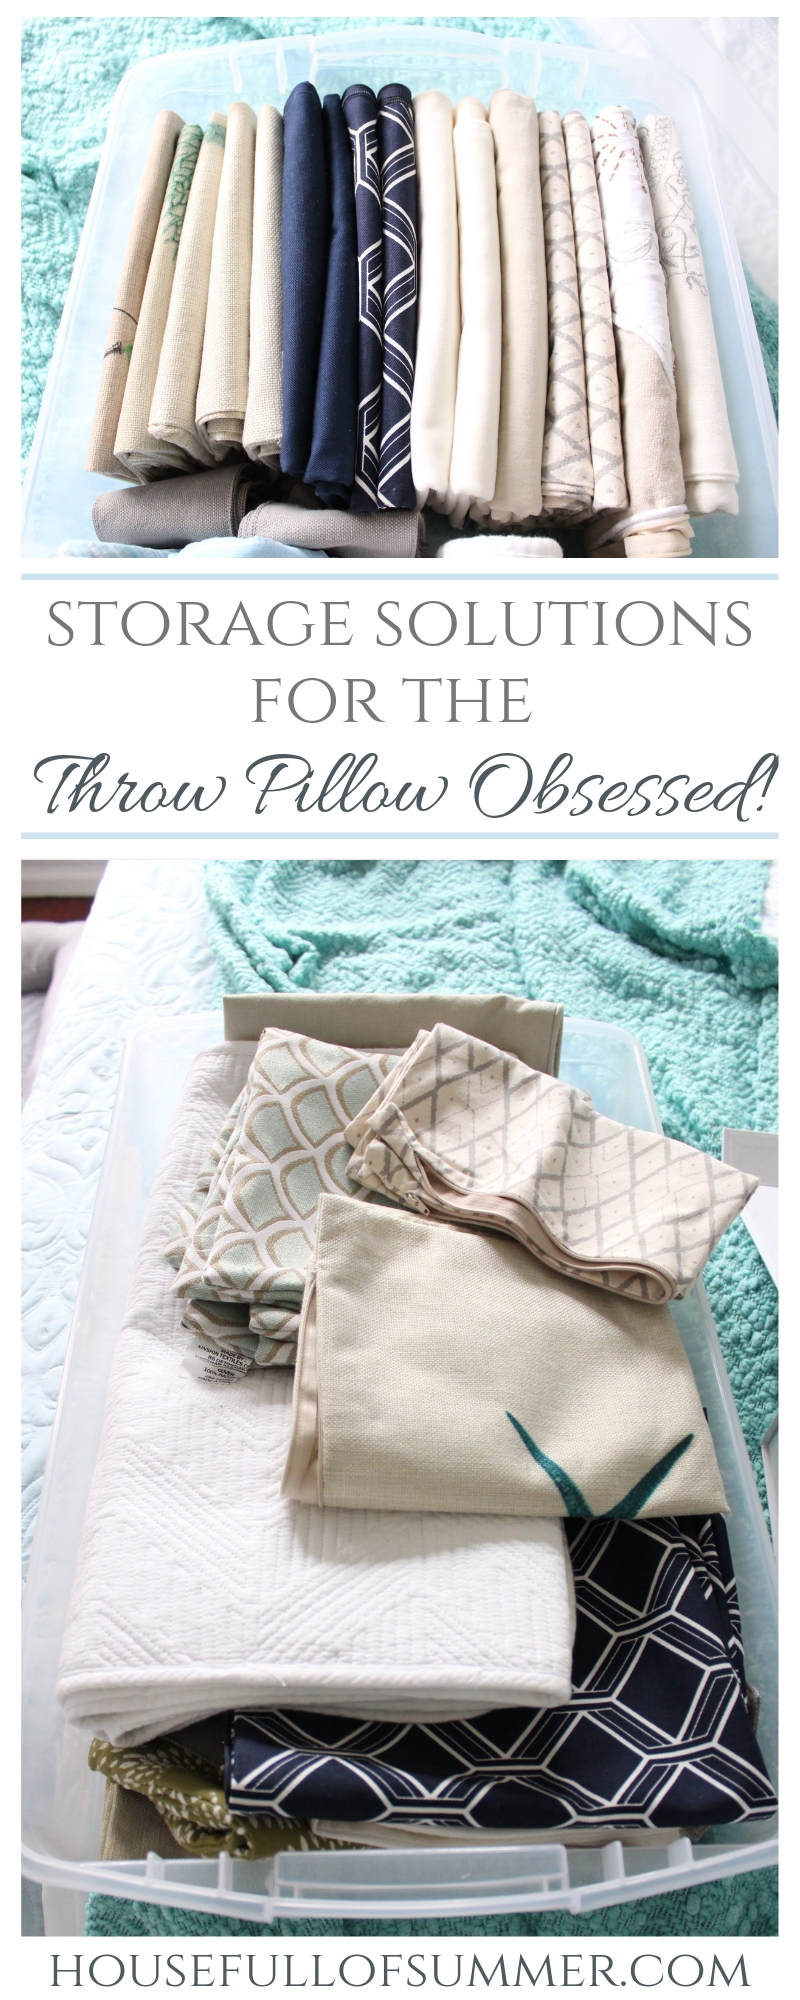 Storage Solutions for the Throw Pillow Obsessed | House Full of Summer - how to create extra storage space for throw pillows and pillow covers, bedding, organization, #mariekondo kondo method